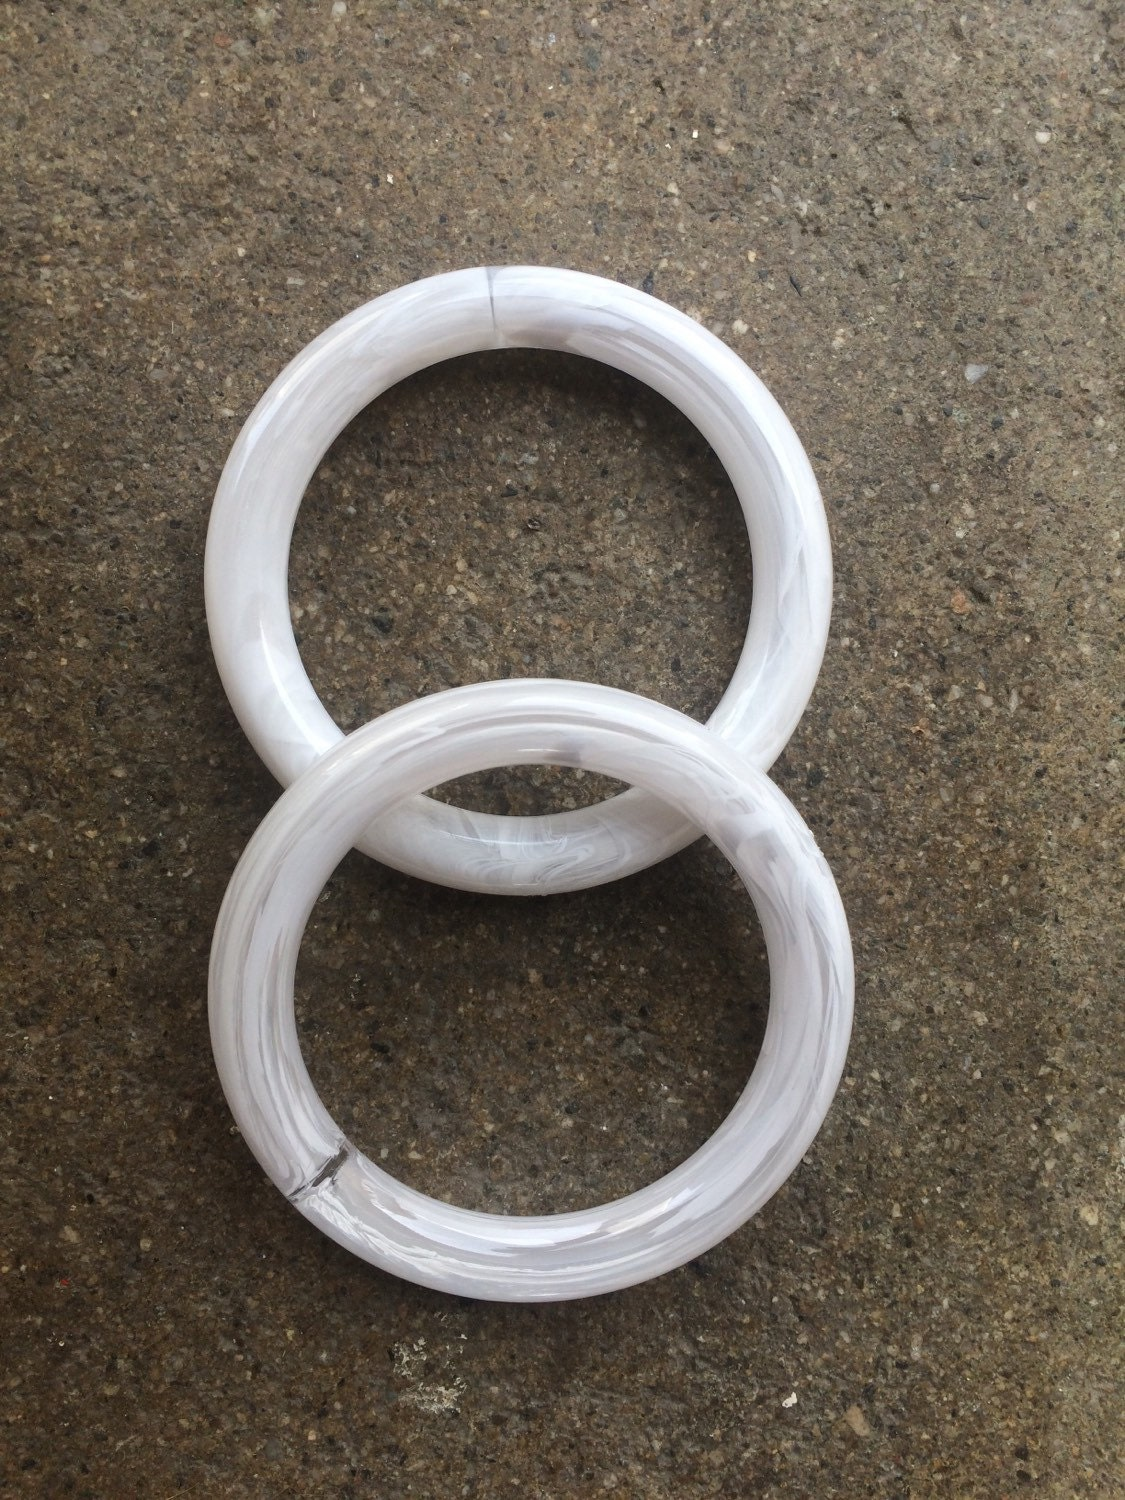 1 dz hard plastic 3 inch rings for arts and crafts by